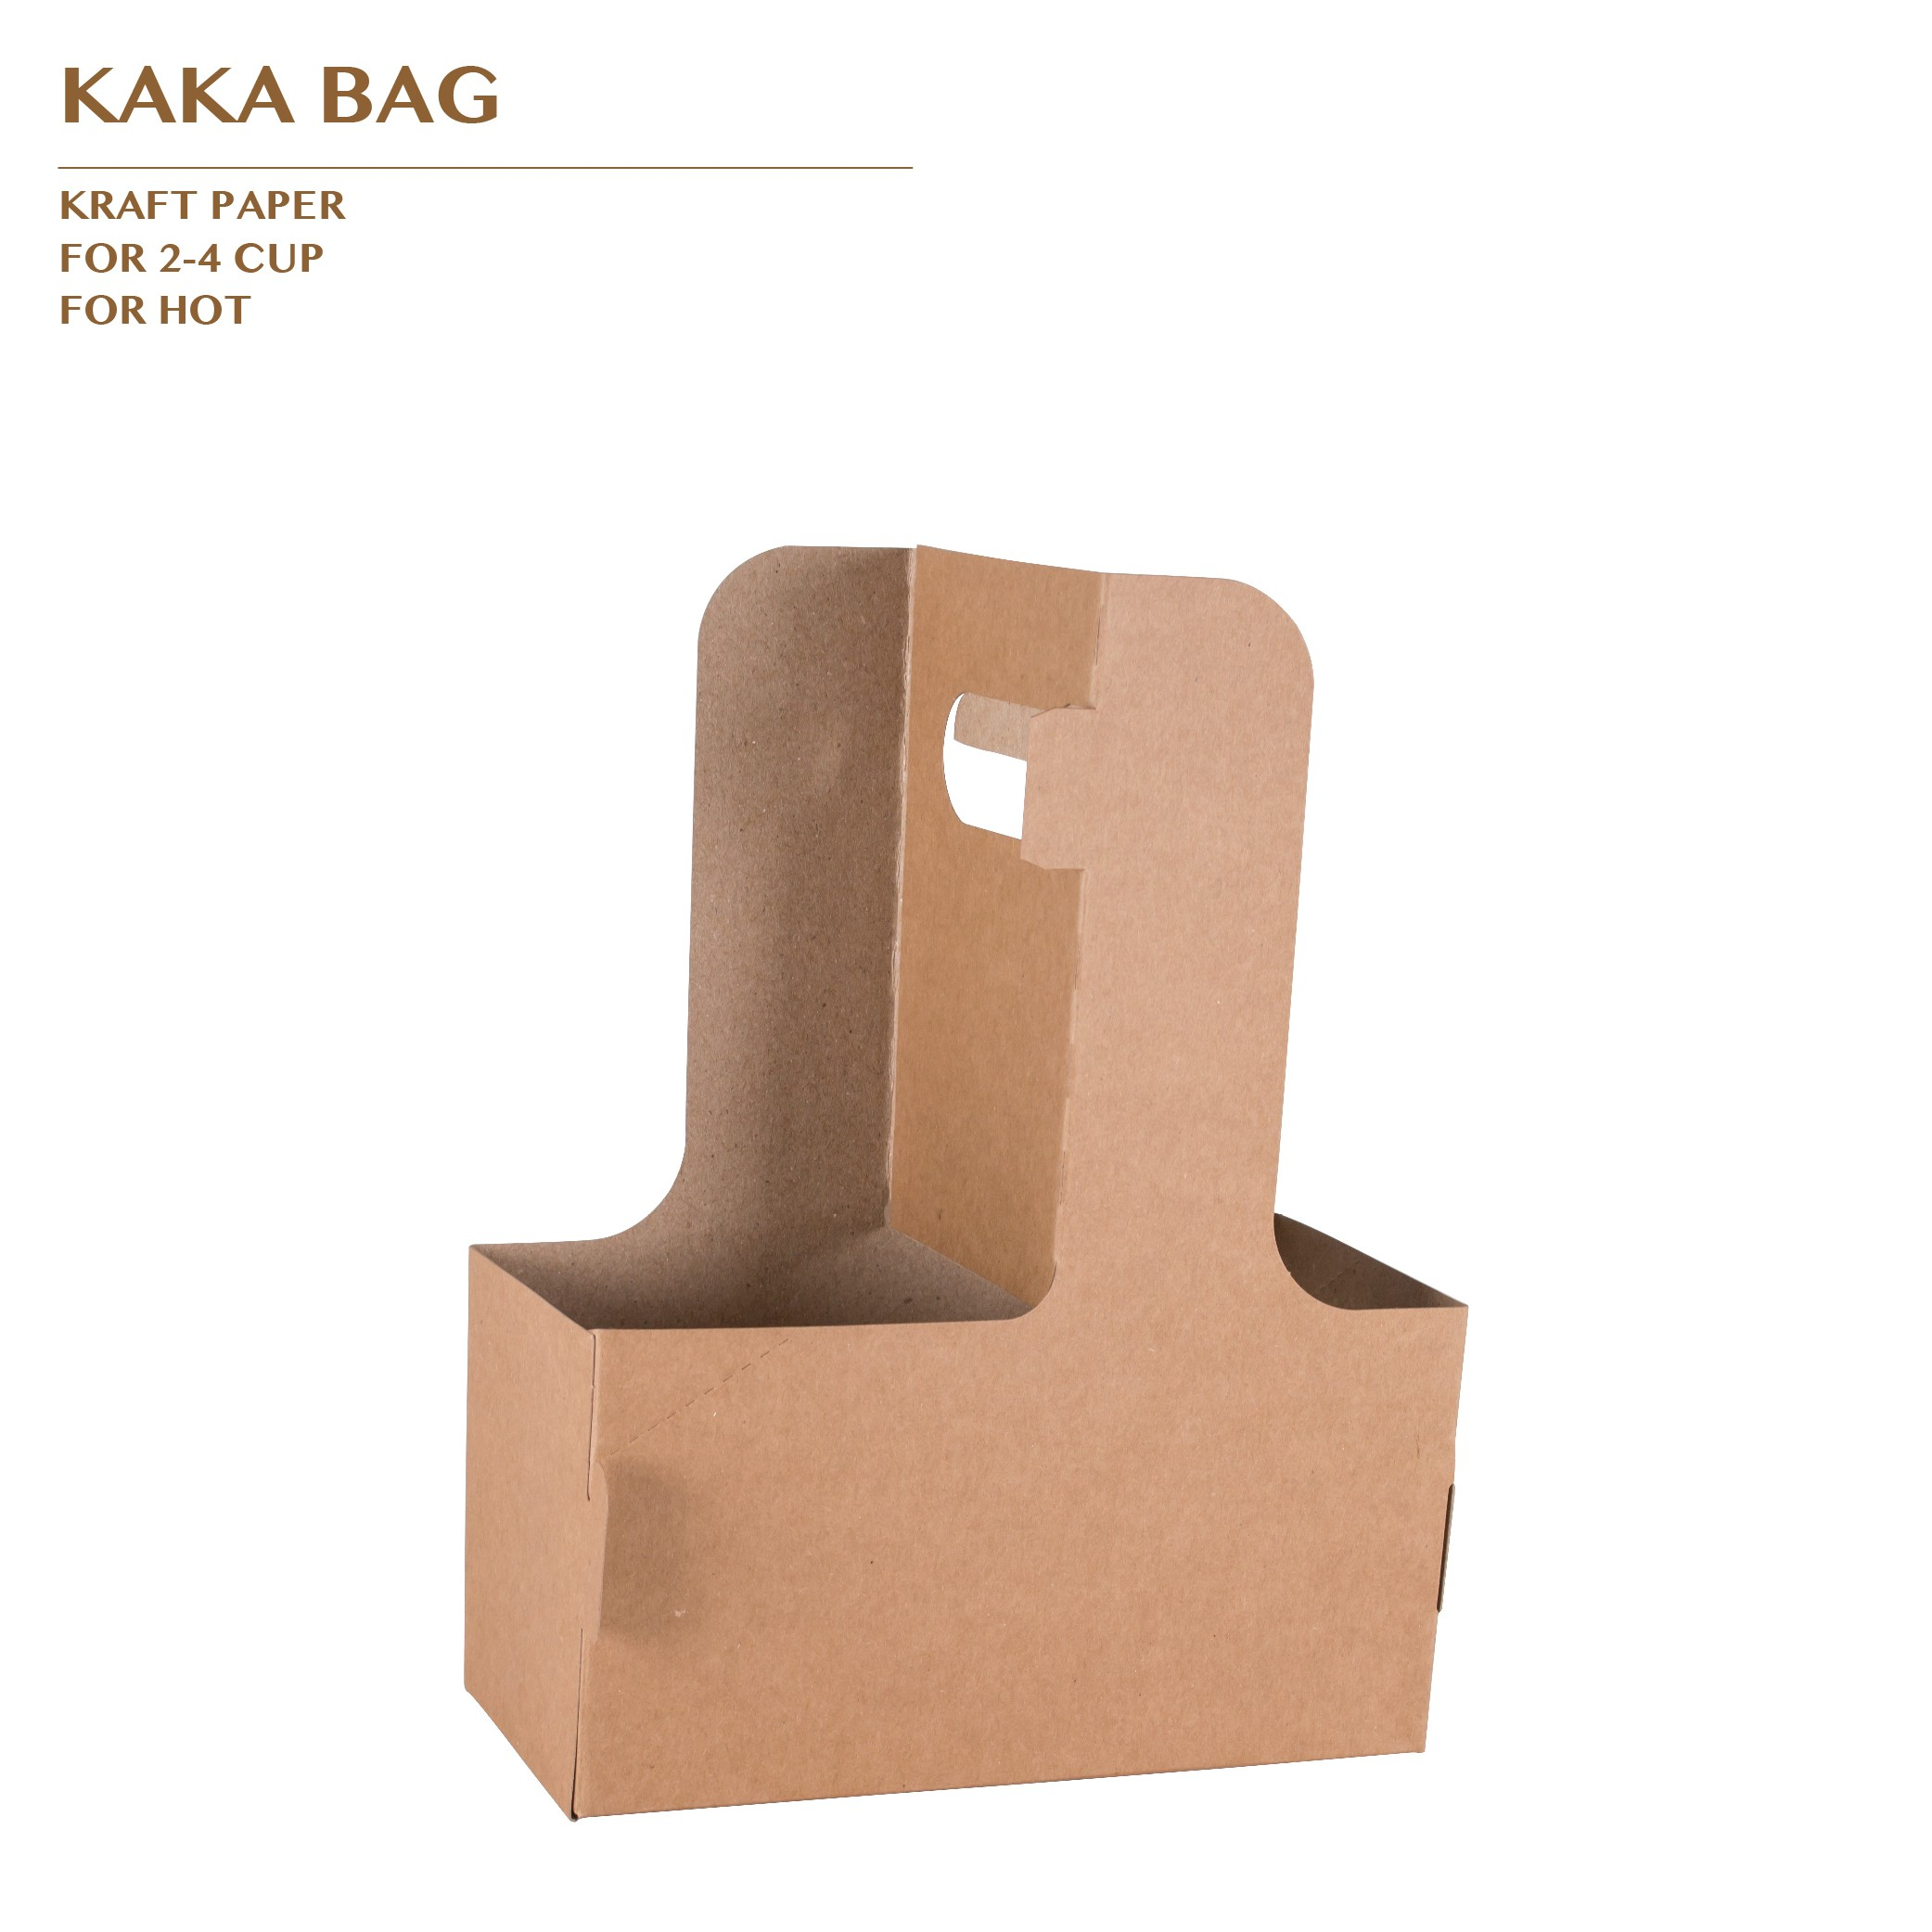 KAKA BAG FOR 2-4 CUP 500PCS/CTN